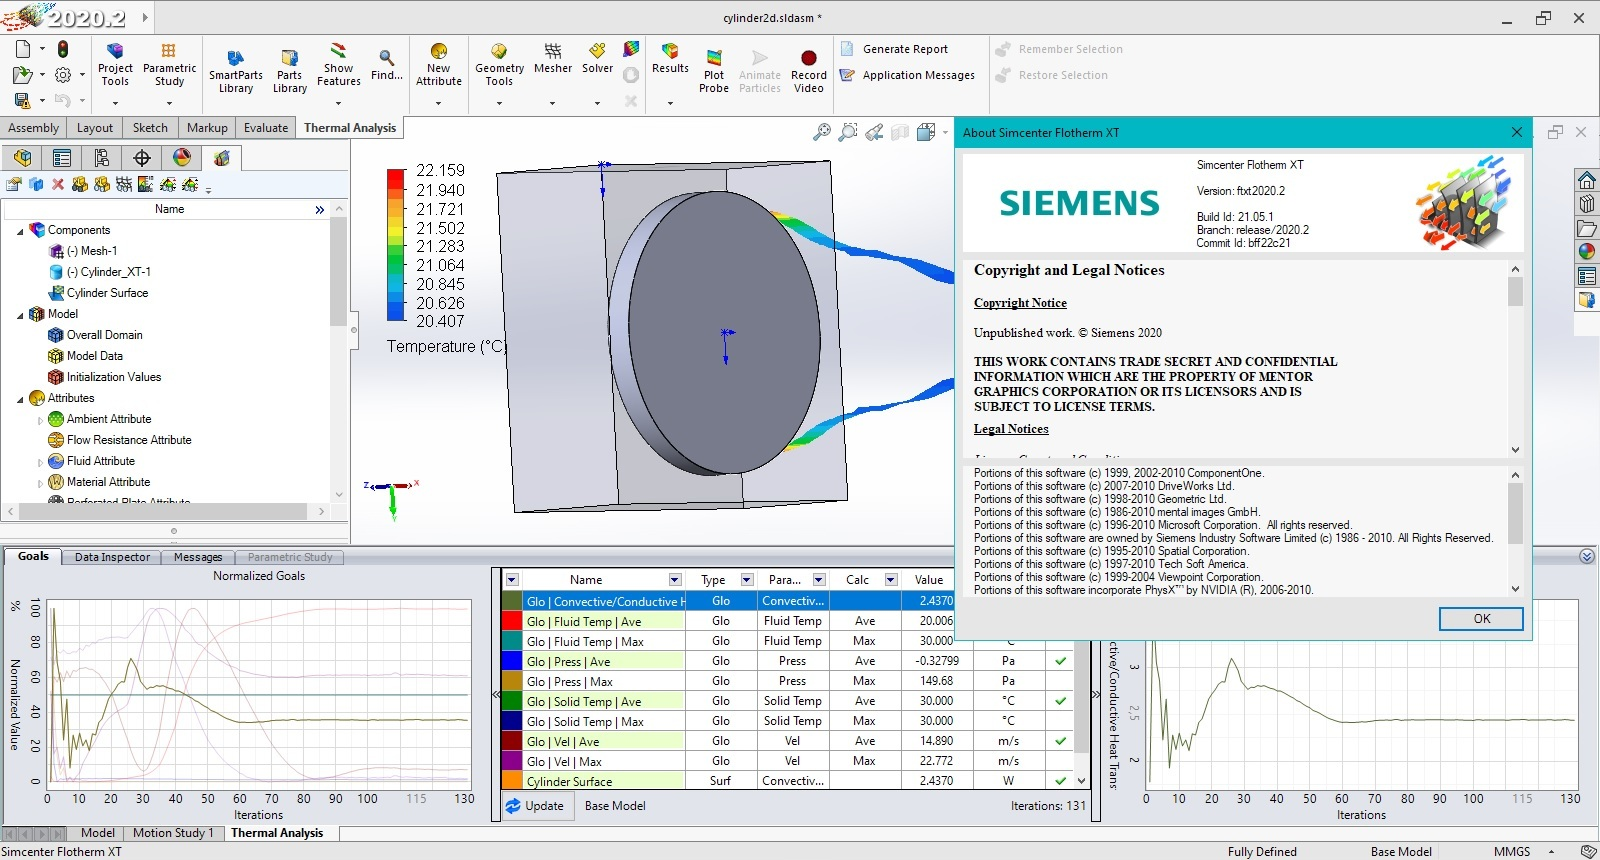 Download Siemens Simcenter Flotherm XT 2020.2 Win64 full license